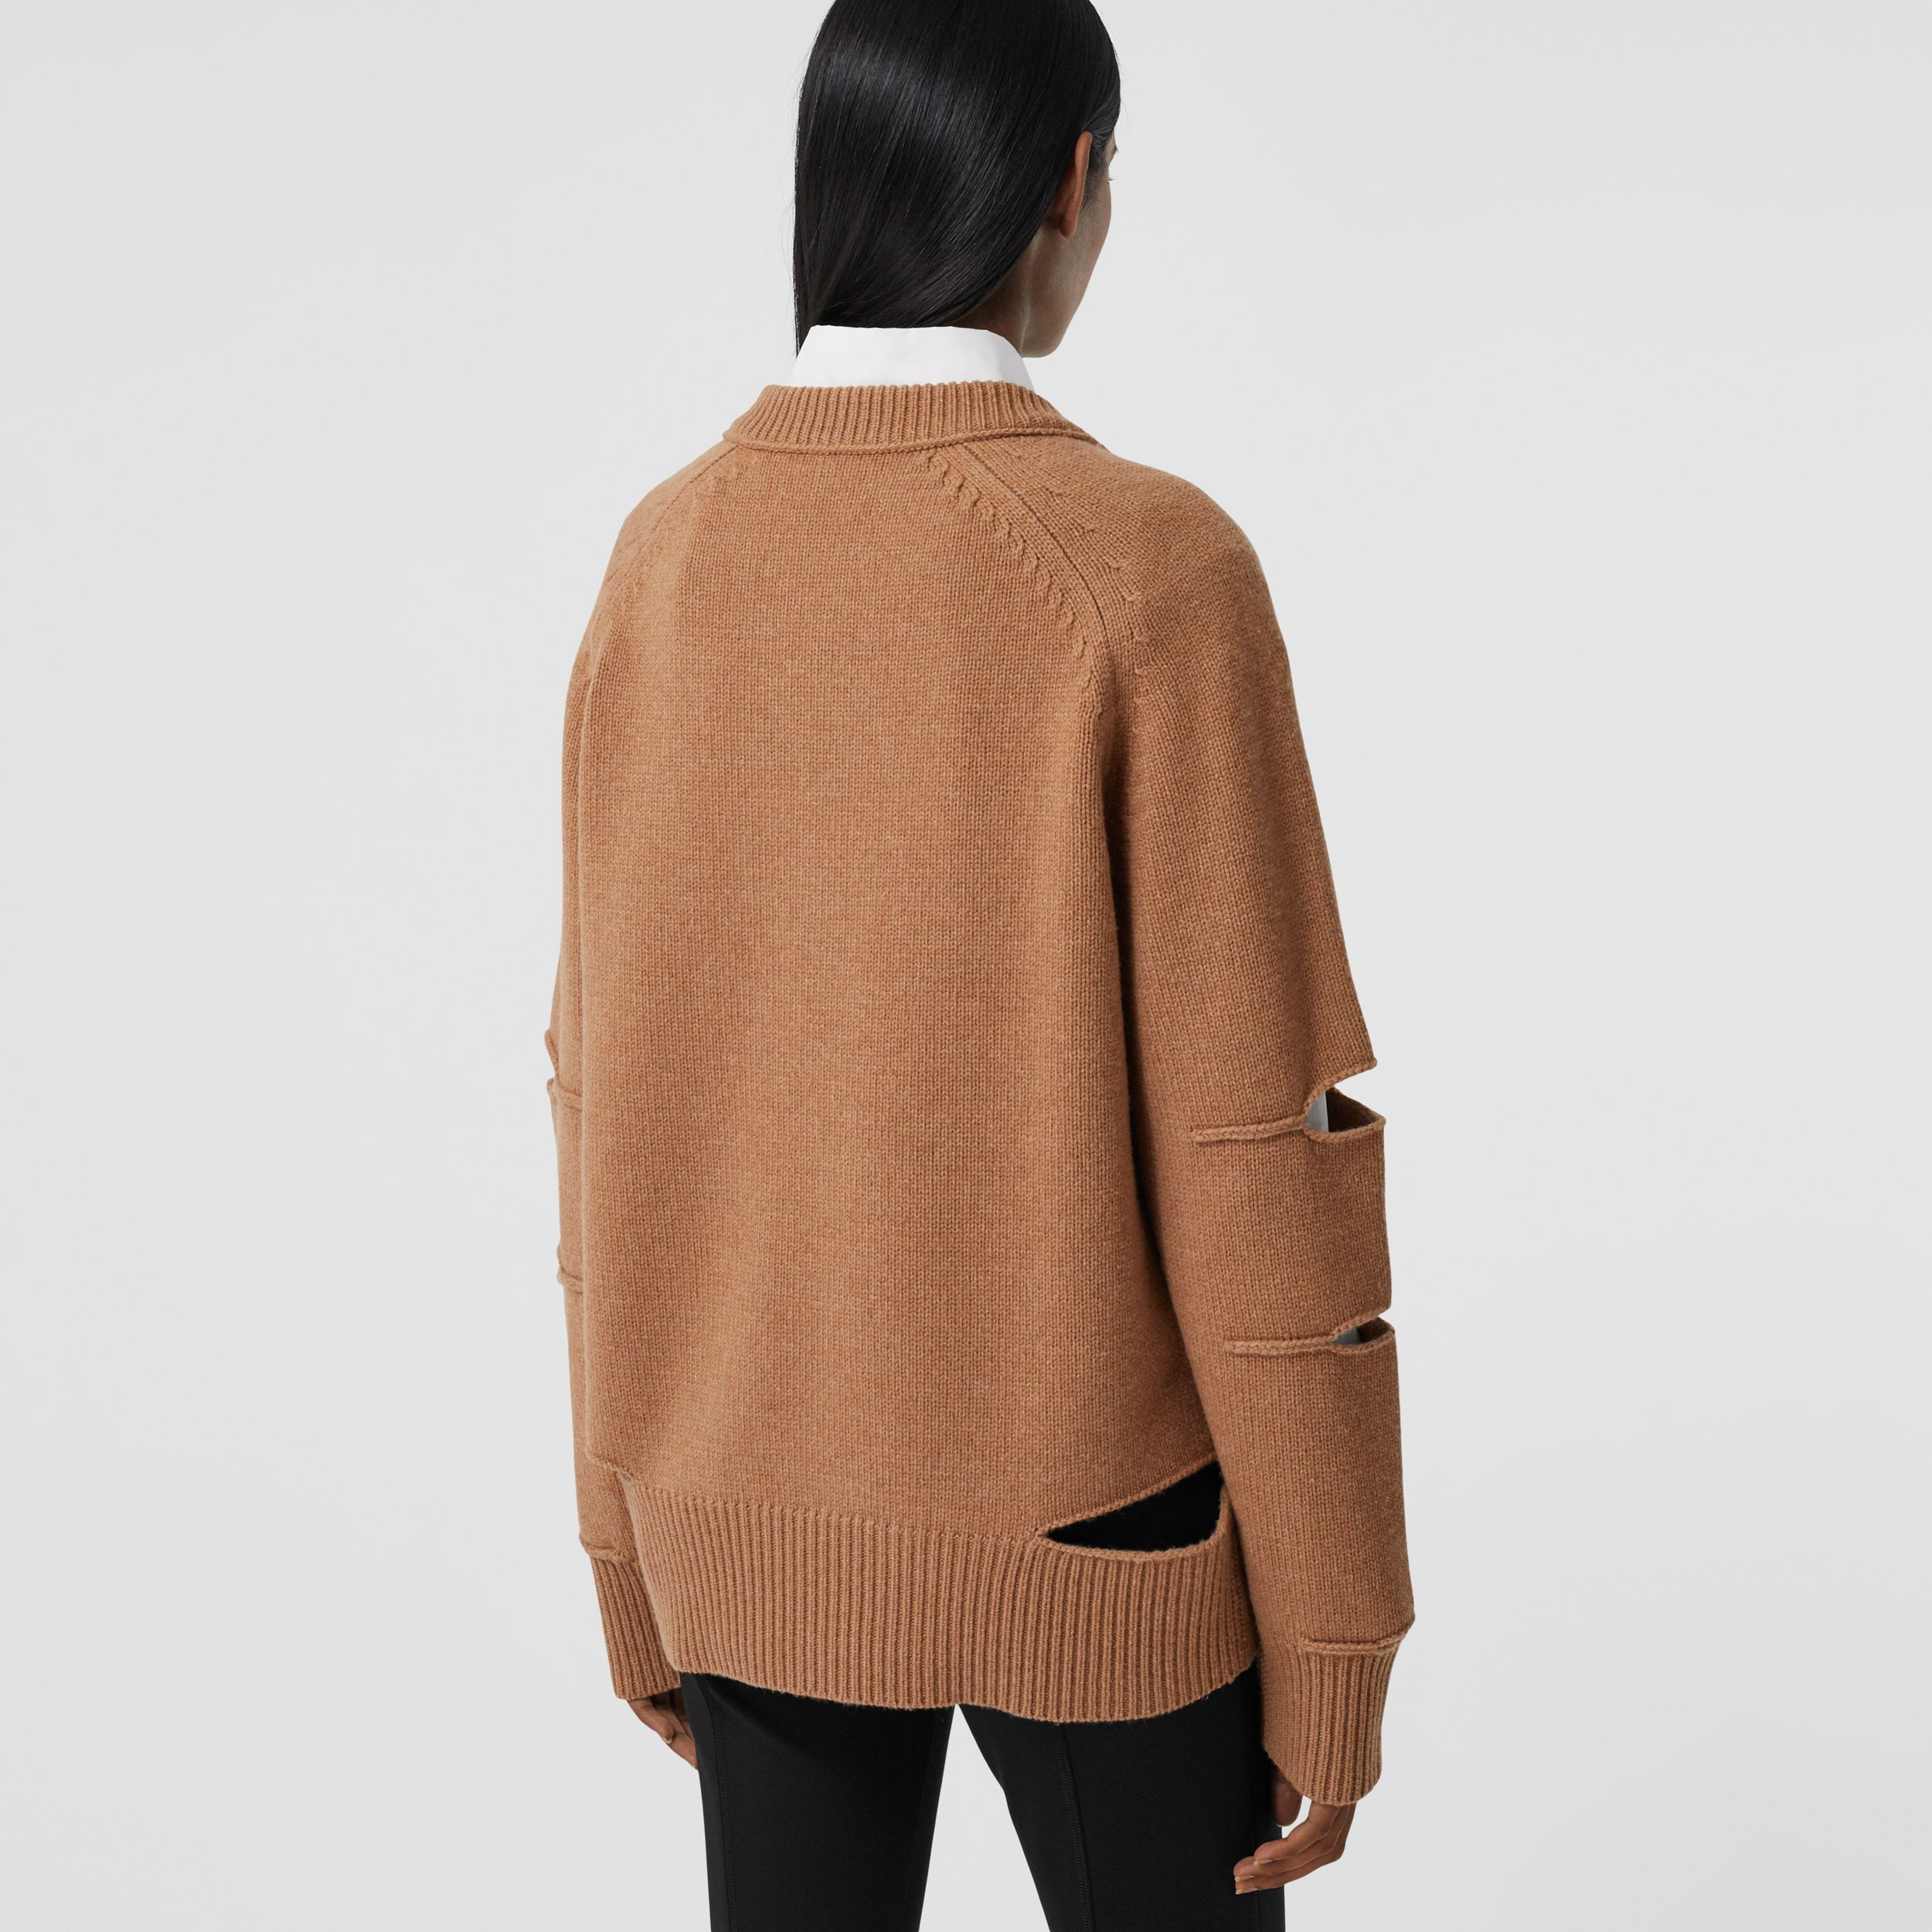 Cut-out Detail Argyle Intarsia Wool Cashmere Sweater in Camel - Women | Burberry - 3